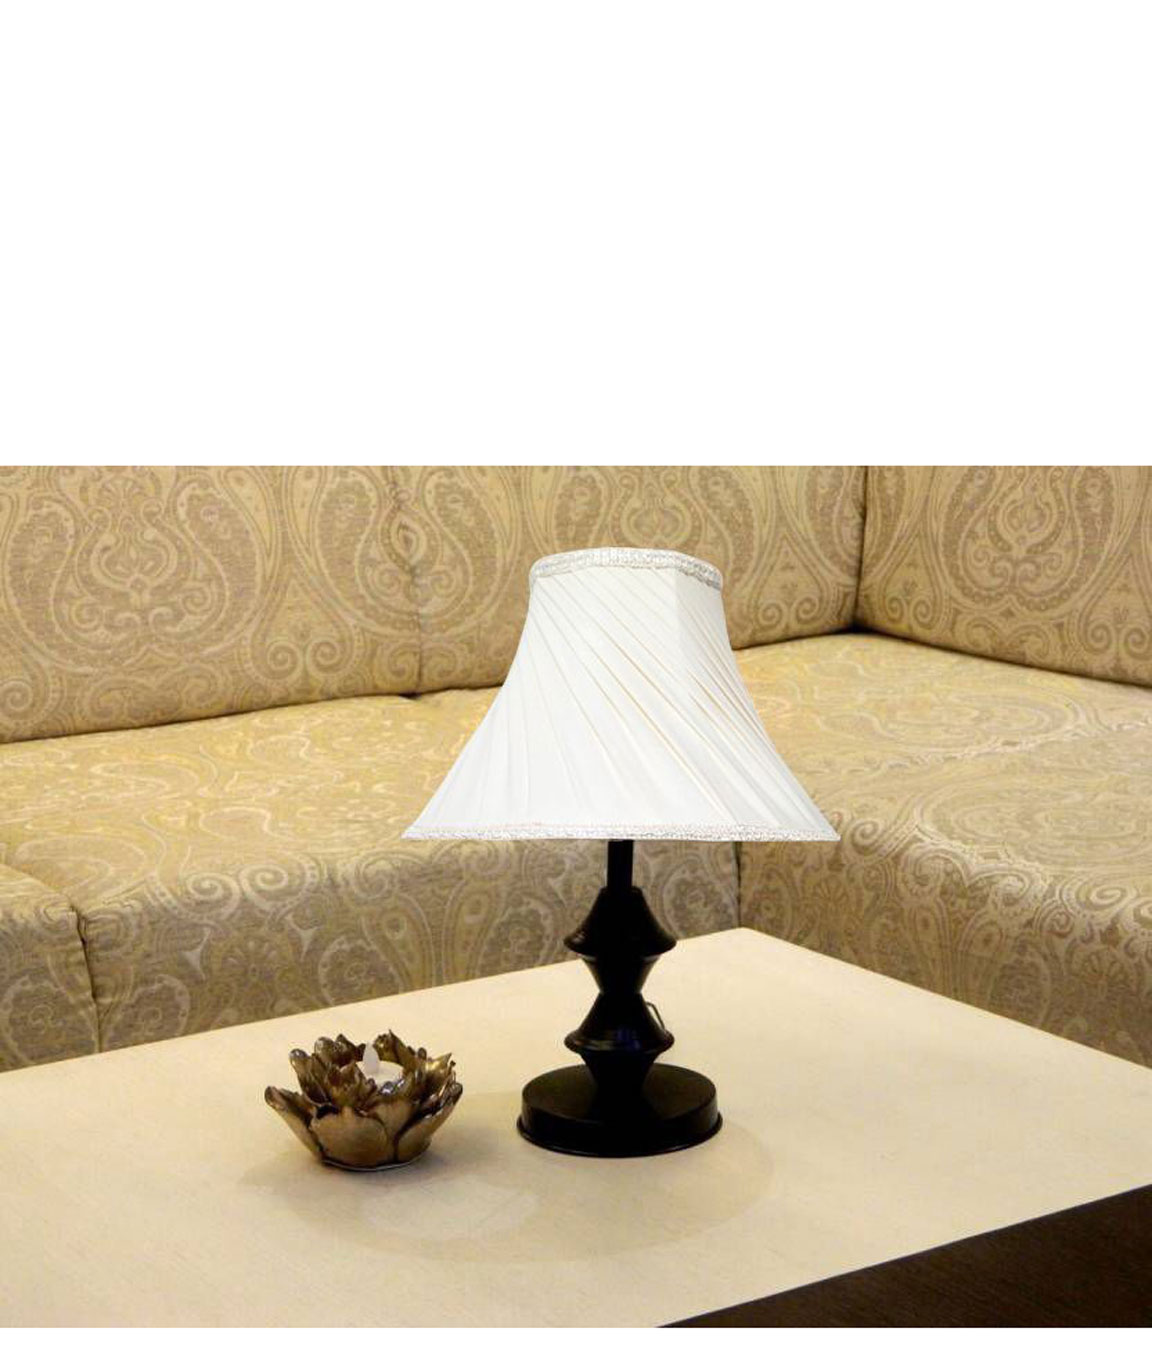 RDC Black Double Ring Stand Table Lamp with 10 Inches Round Slanting Pleated Cream with Lace Border Lamp Shade